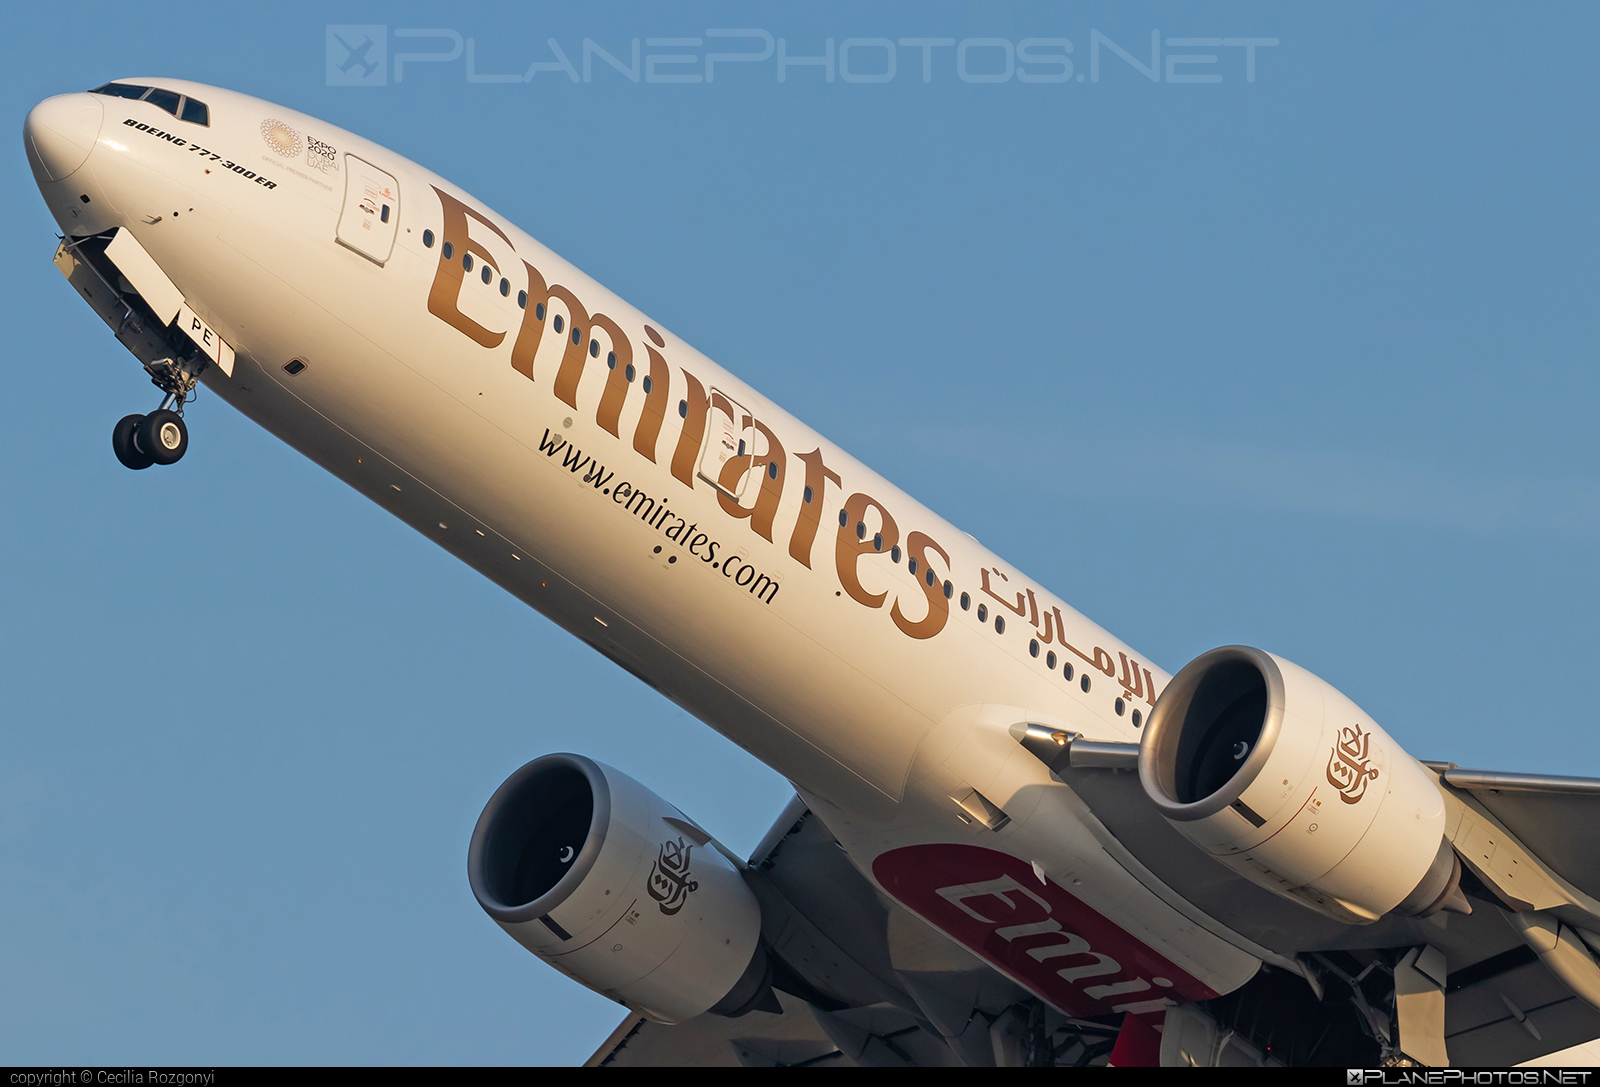 Emirates Boeing 777-300ER - A6-EPE #b777 #b777er #boeing #boeing777 #emirates #tripleseven